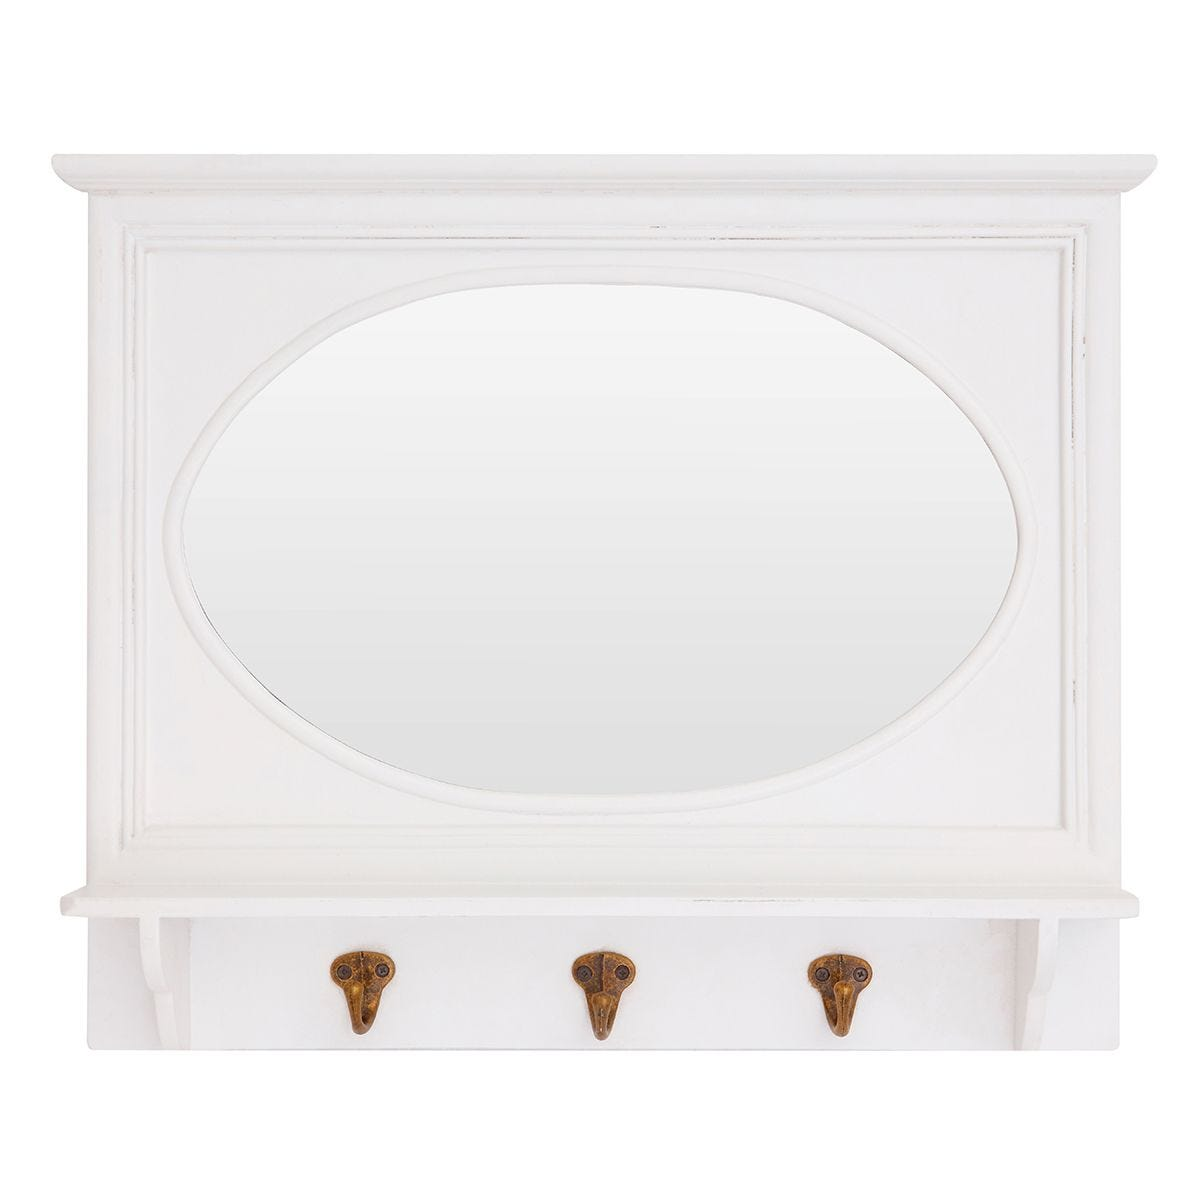 Premier Housewares Whitley Wall Mirror with 3 Hanging Hooks - White